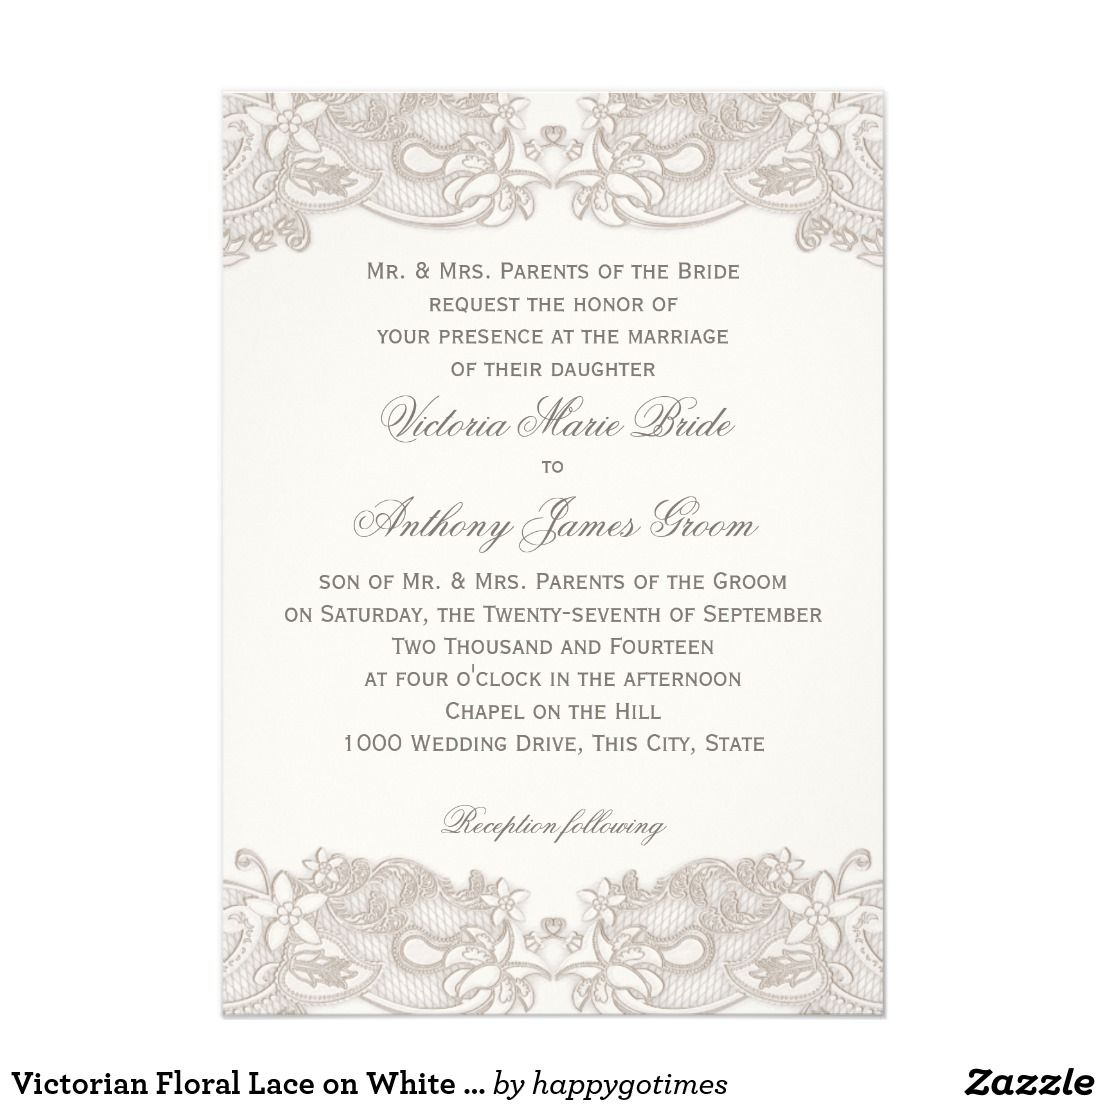 Victorian Floral Lace on White Design Wedding Card | Country ...